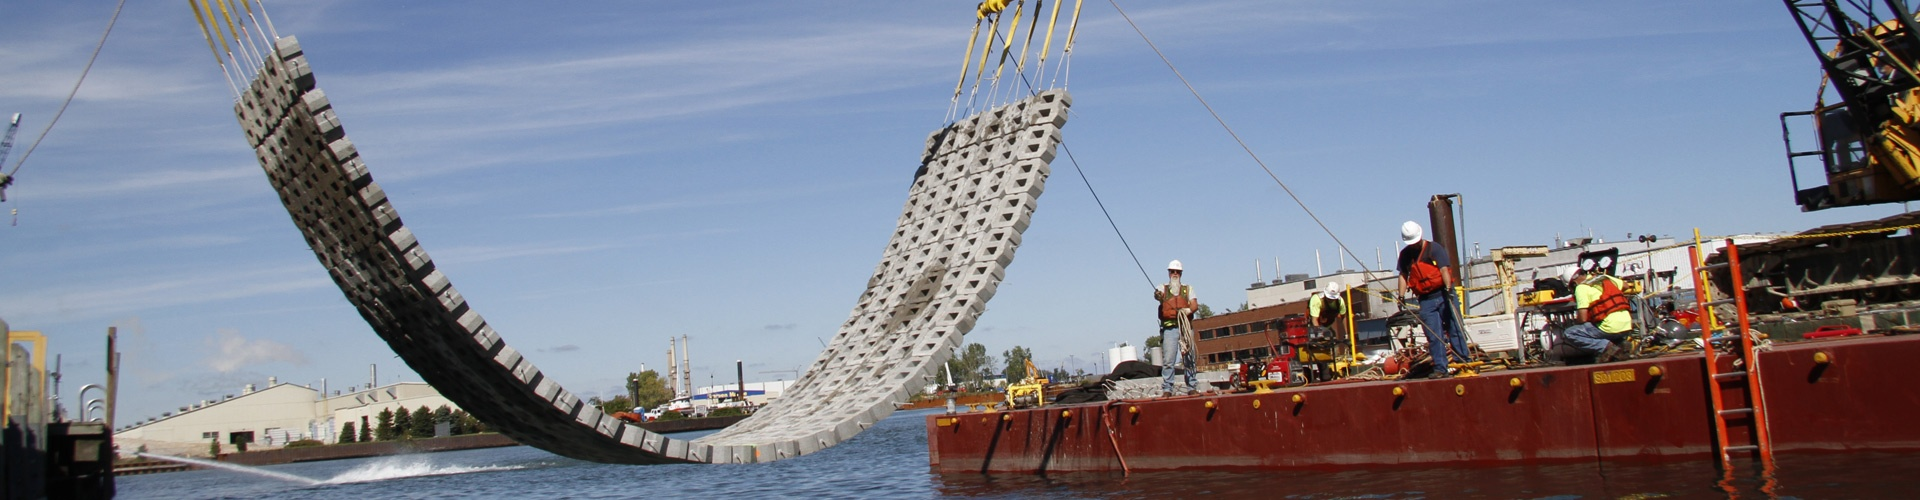 precast articulating block mats, scour and erosion repairs, railroad bridge scour and erosion prevention